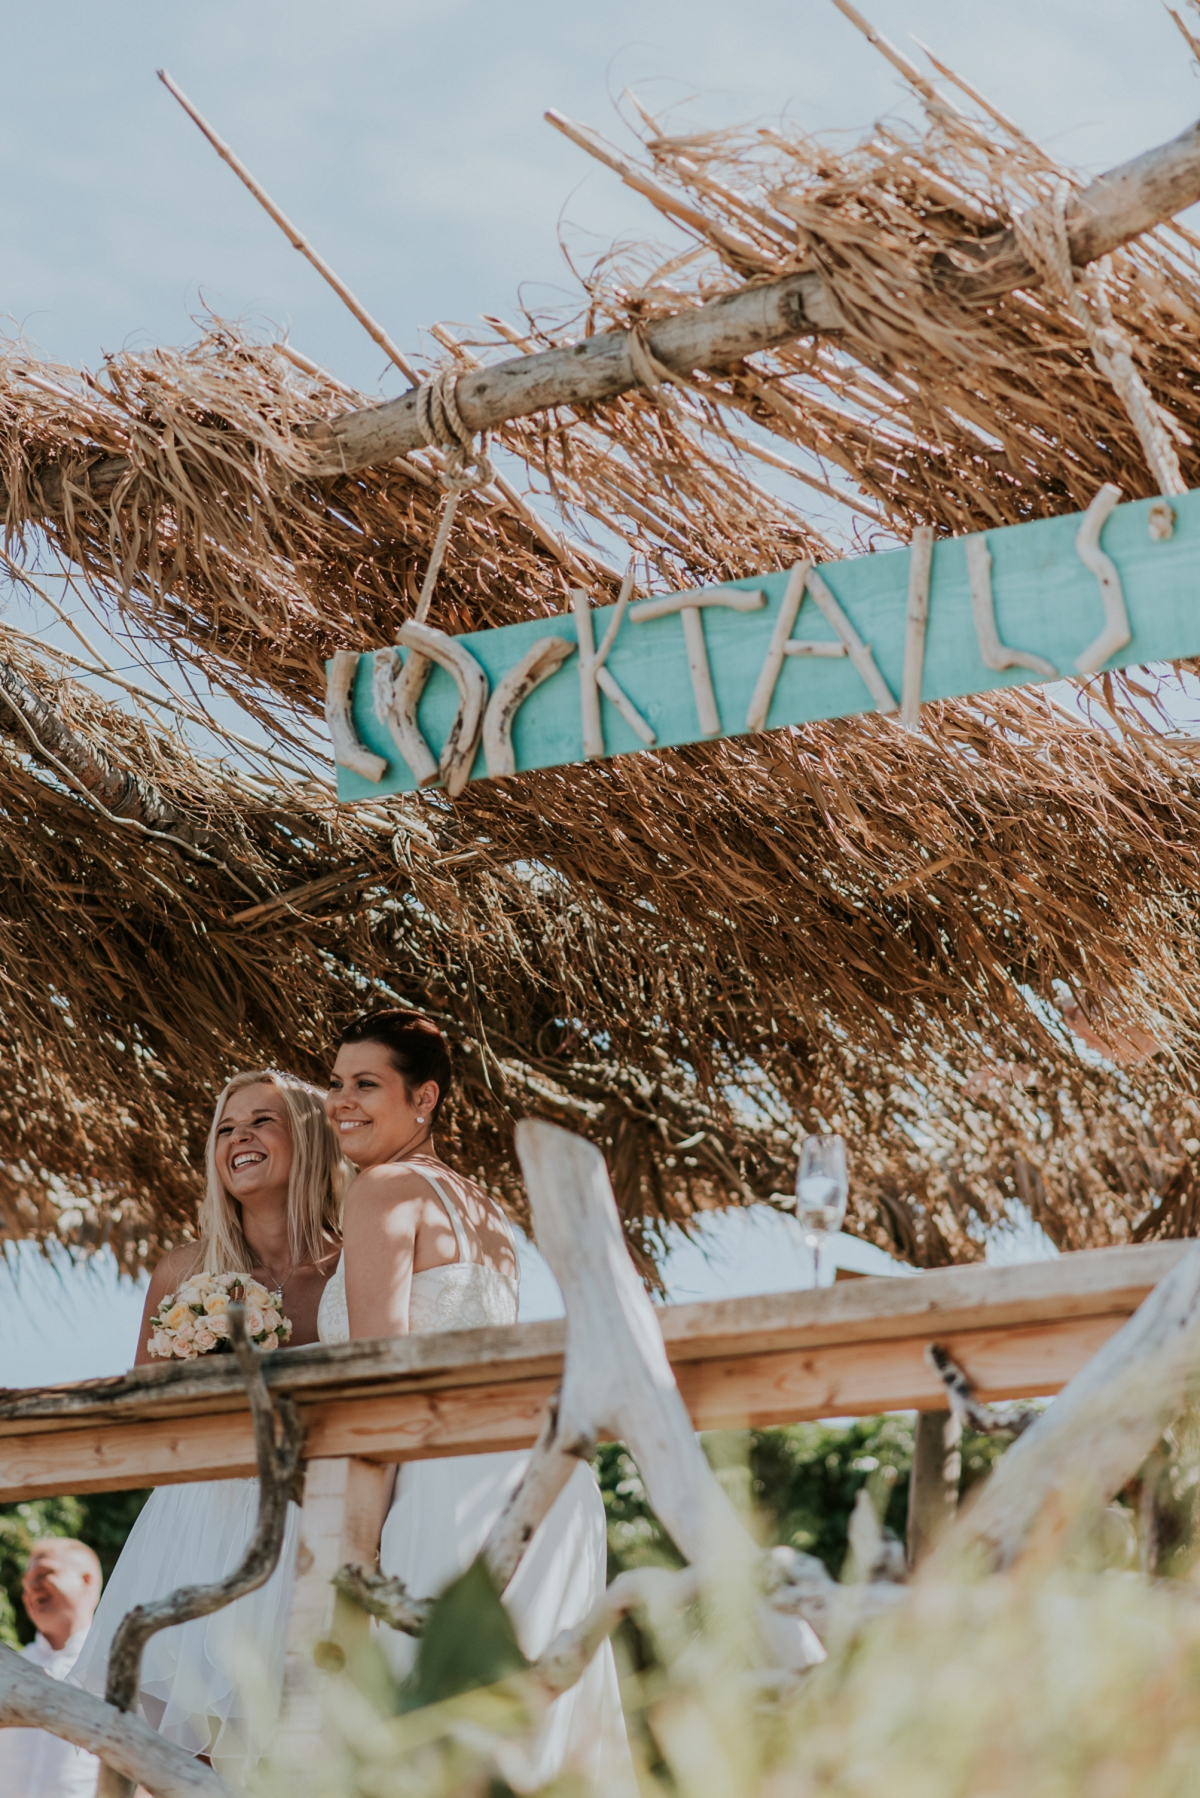 Levan_sand_beach_wedding_Istria_croatia_017.jpg